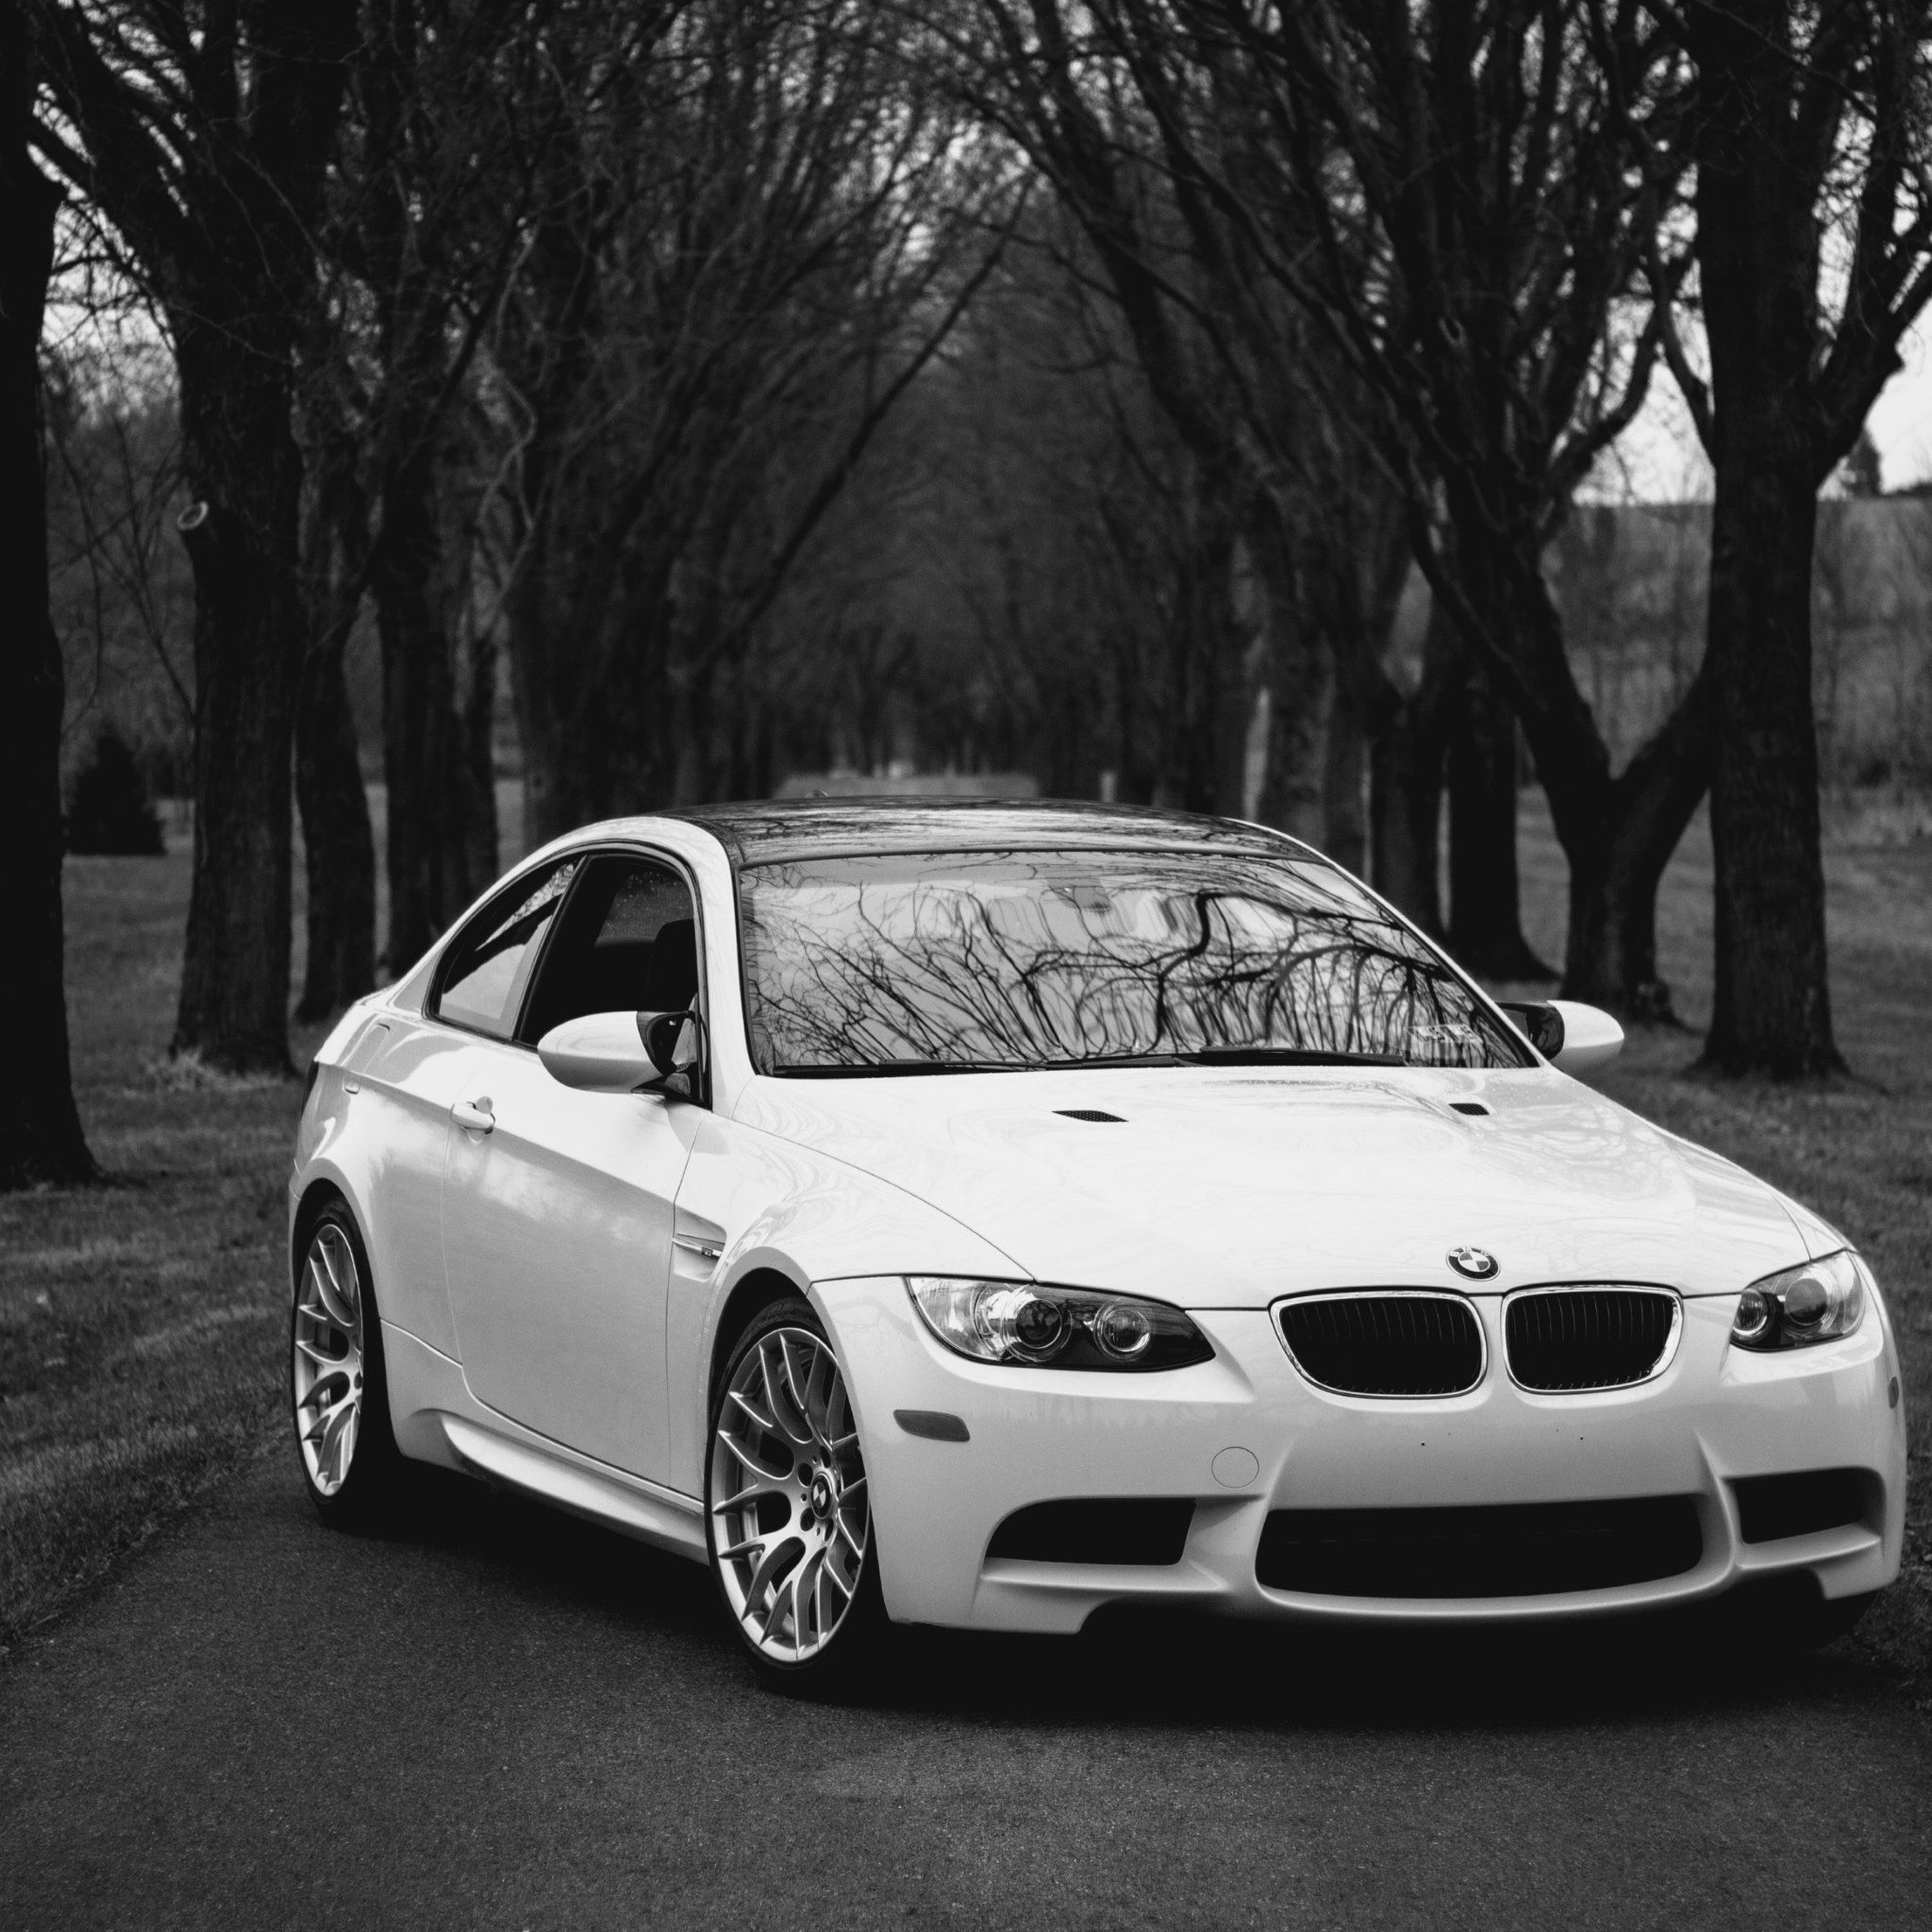 Bmw M3 In Black And White Wallpapers Hd Wallpapers Bmw Bmw M3 Black Bmw M3